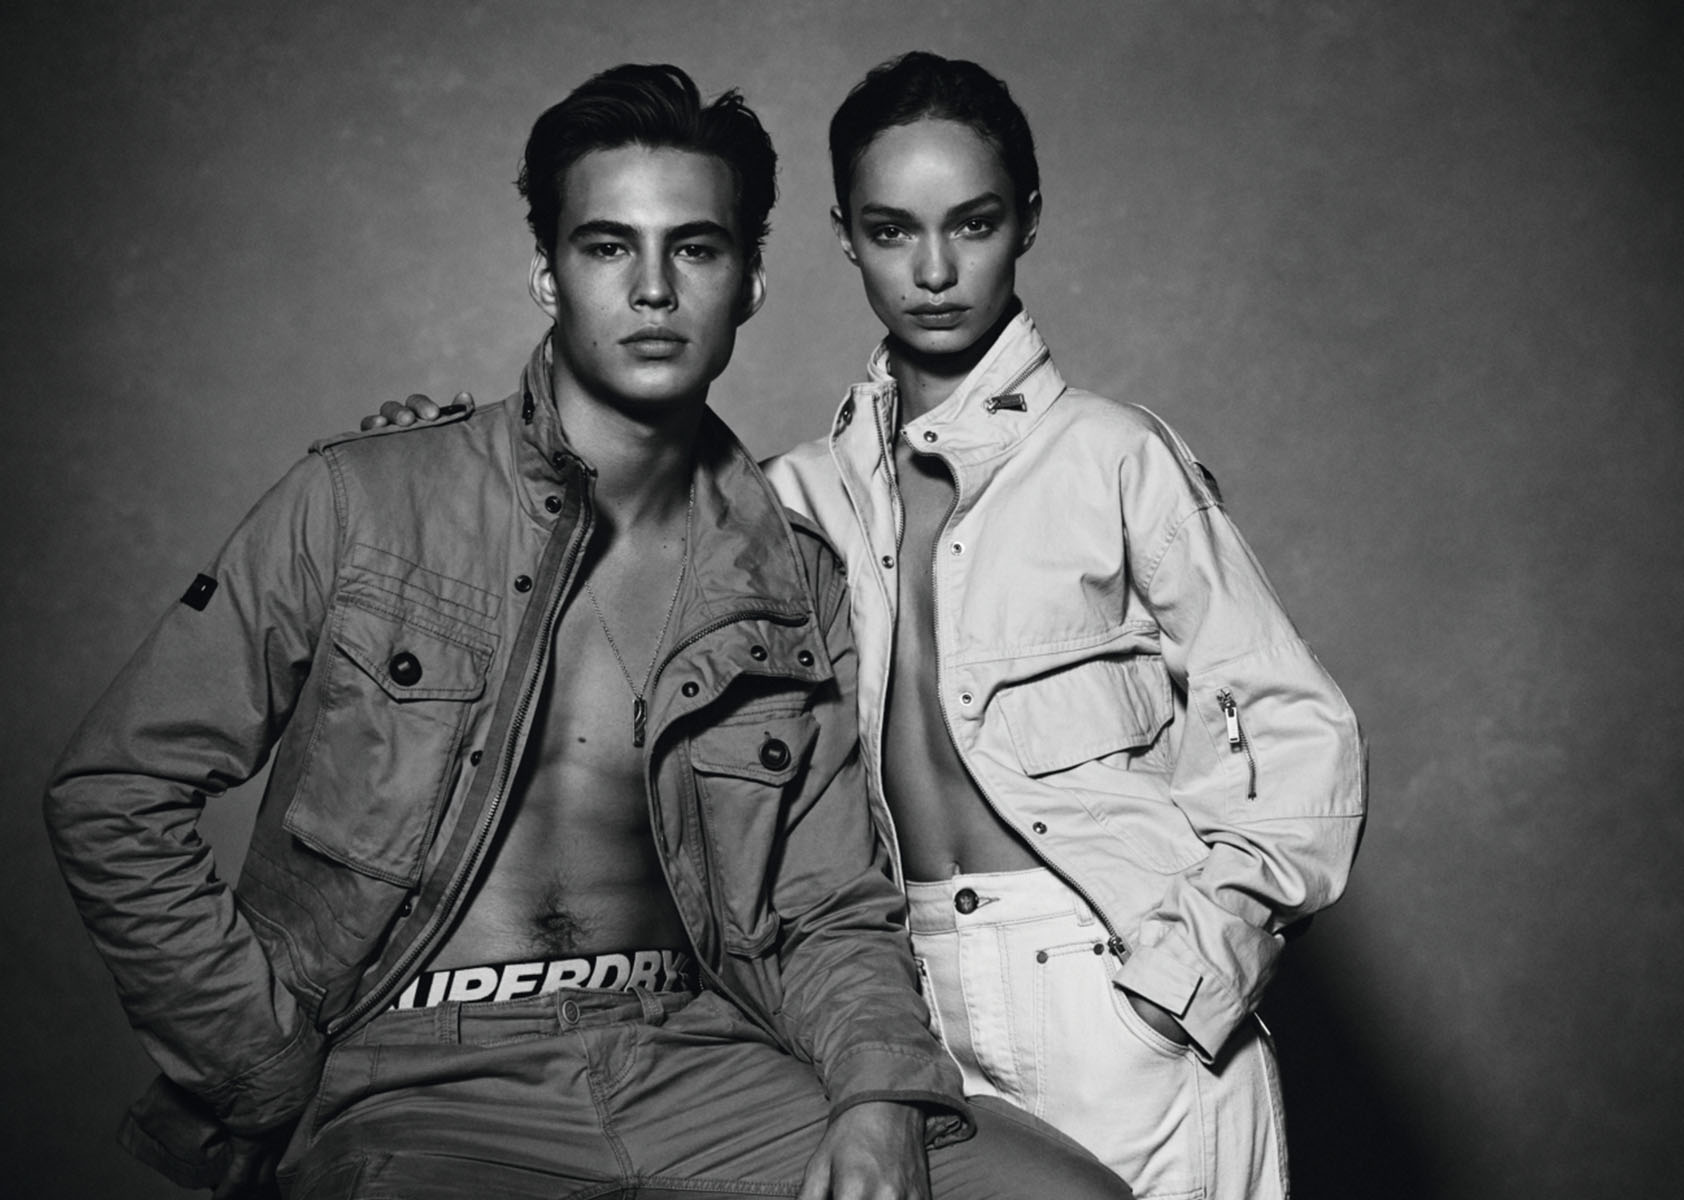 Be Iconic – a campaign by Superdry